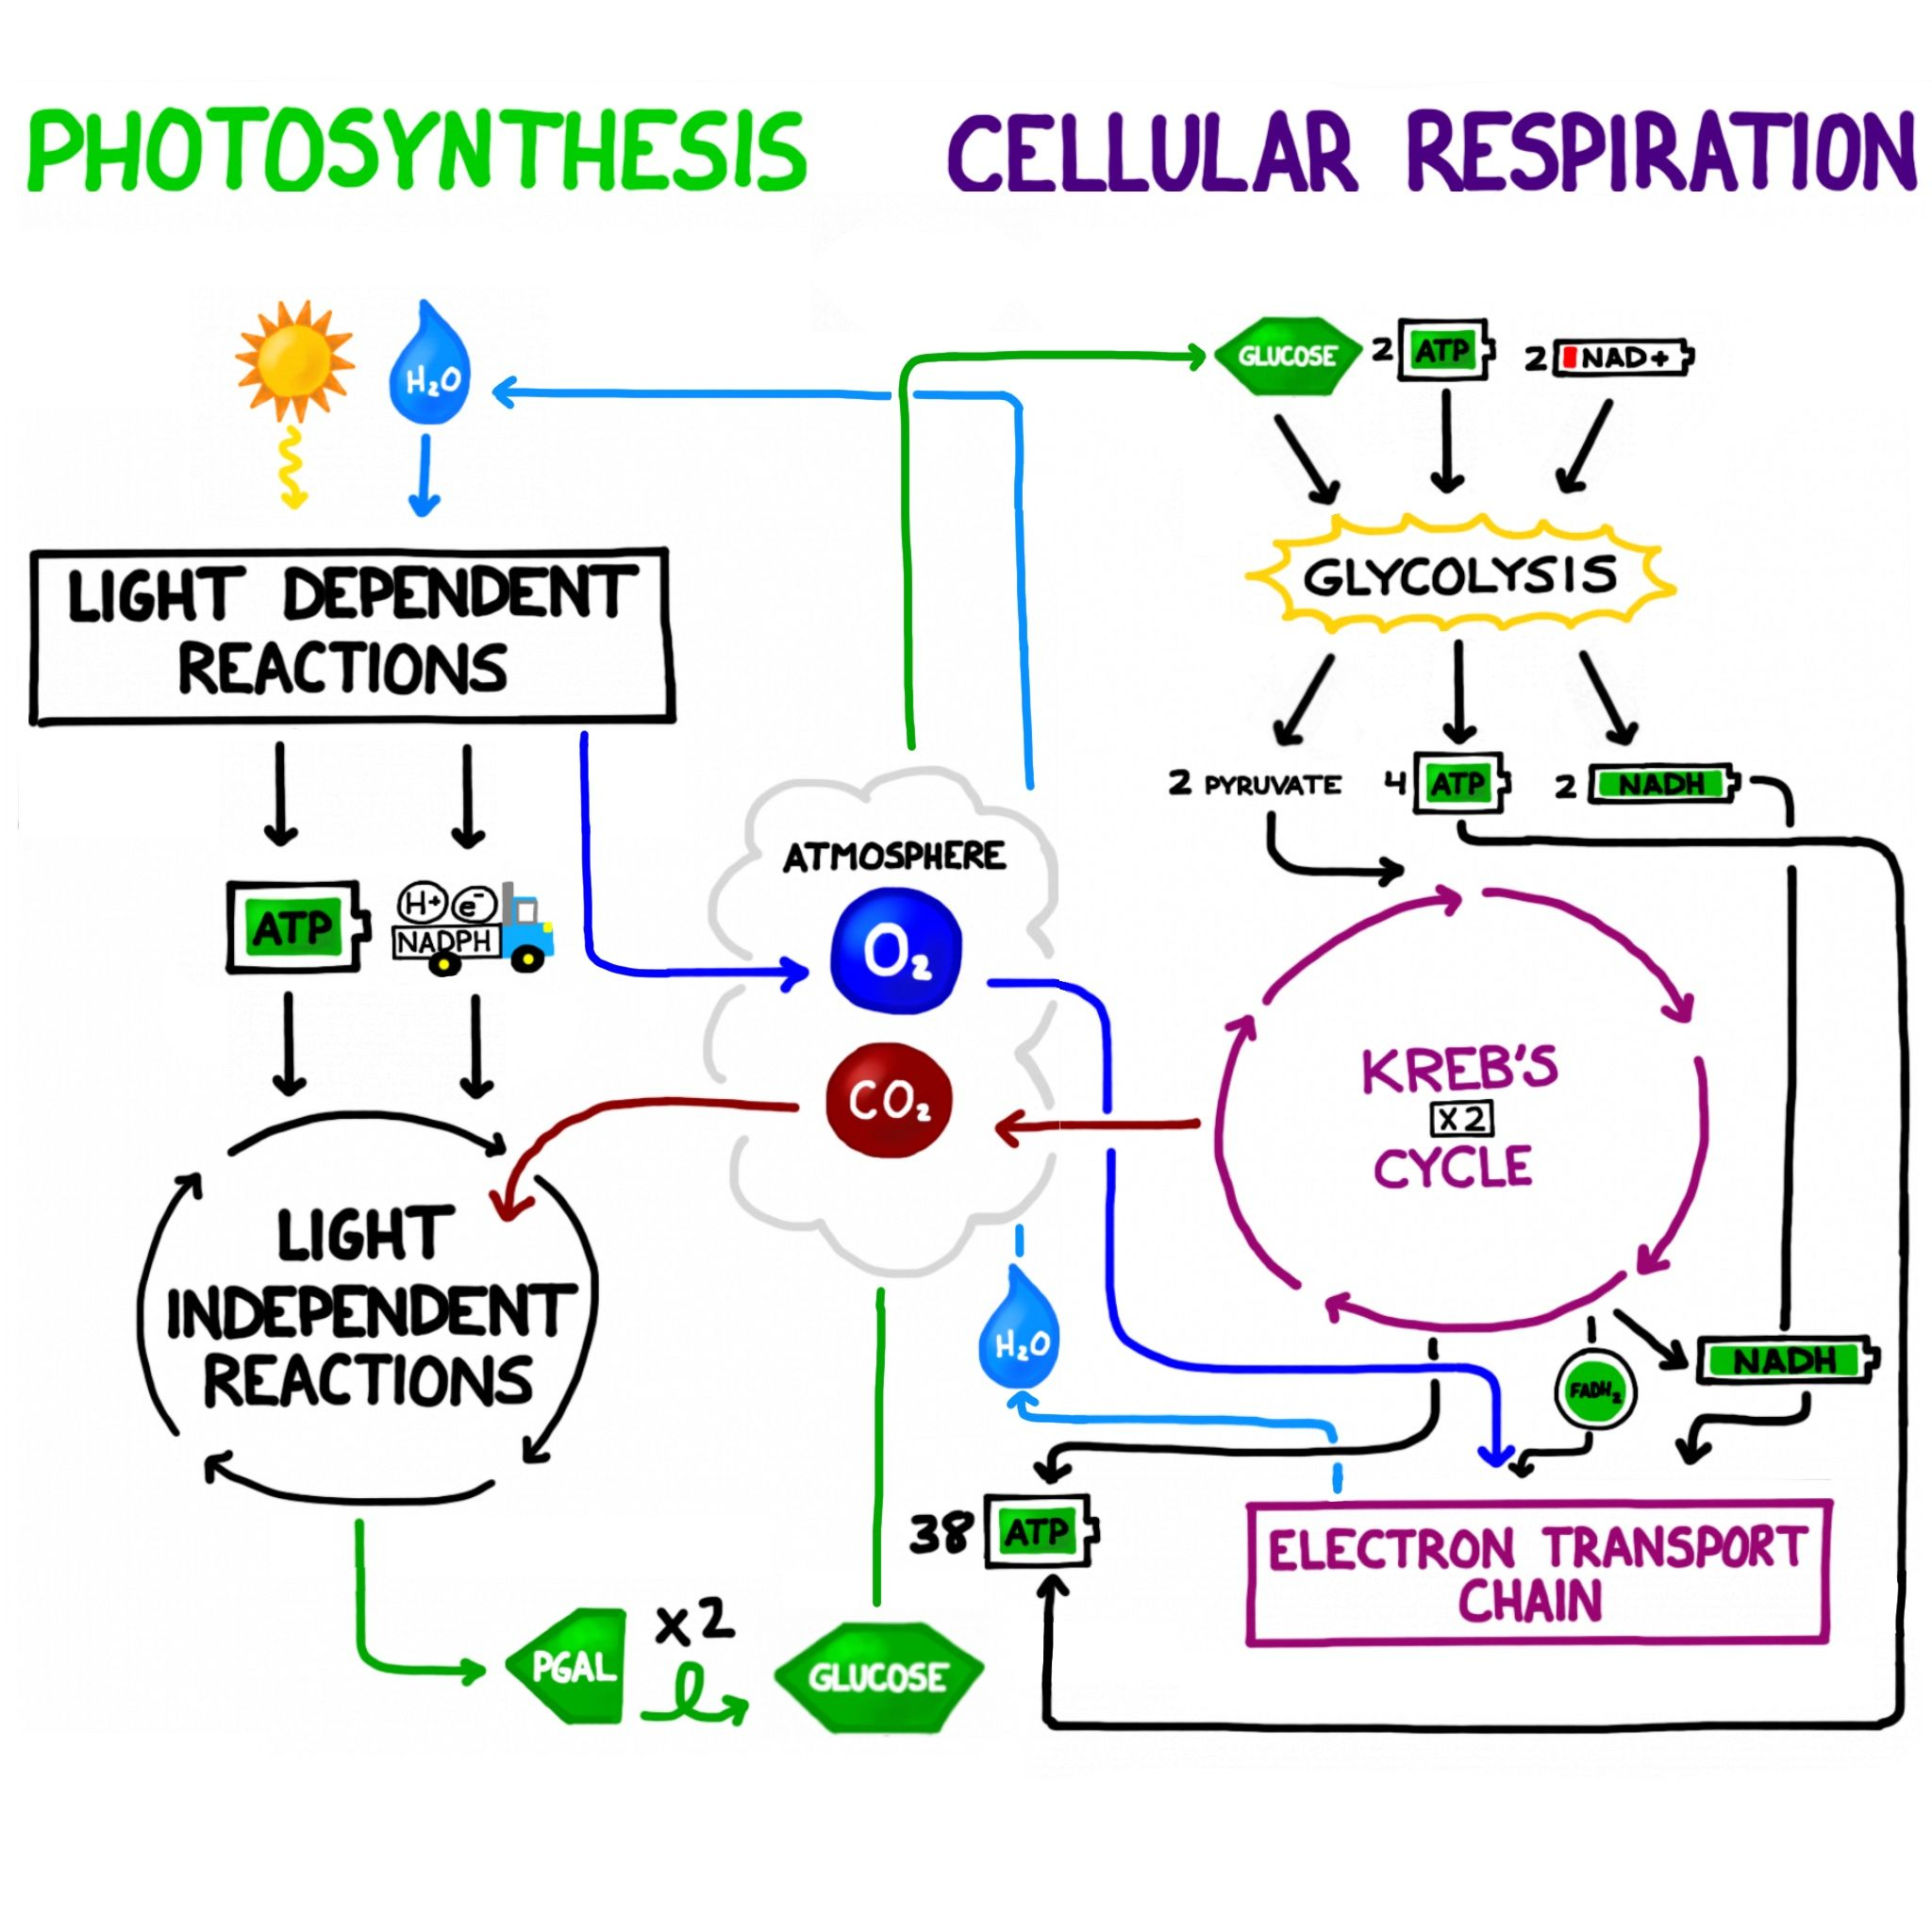 Comparison Of Photosynthesis And Respiration Processes